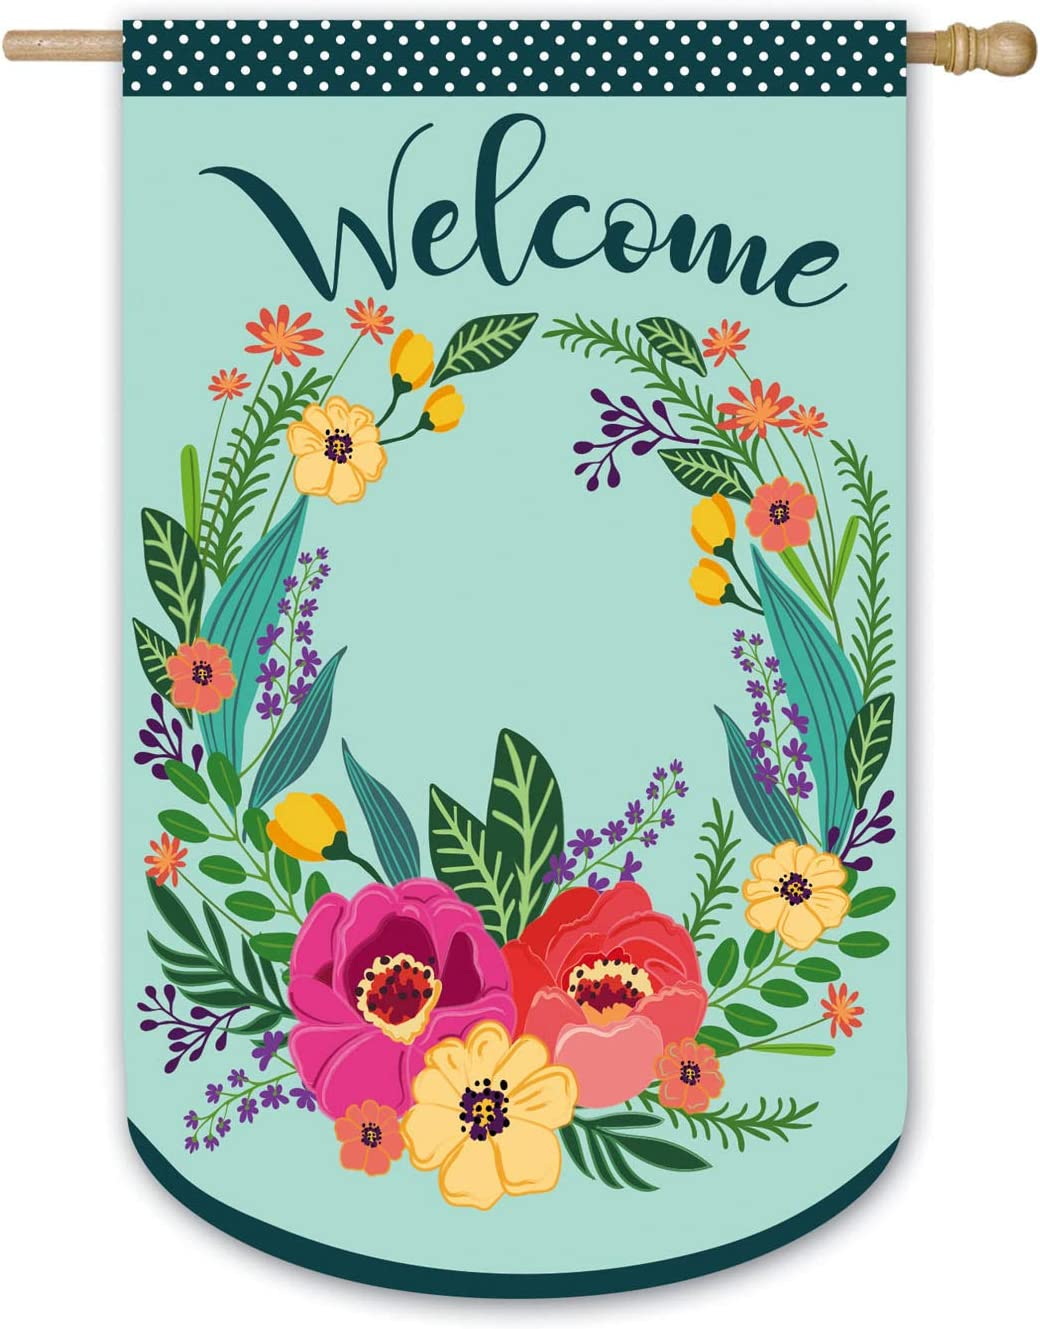 Evergreen Flag Indoor Outdoor Décor for Homes Gardens and Yards Spring Floral Welcome Wreath House Applique Flag